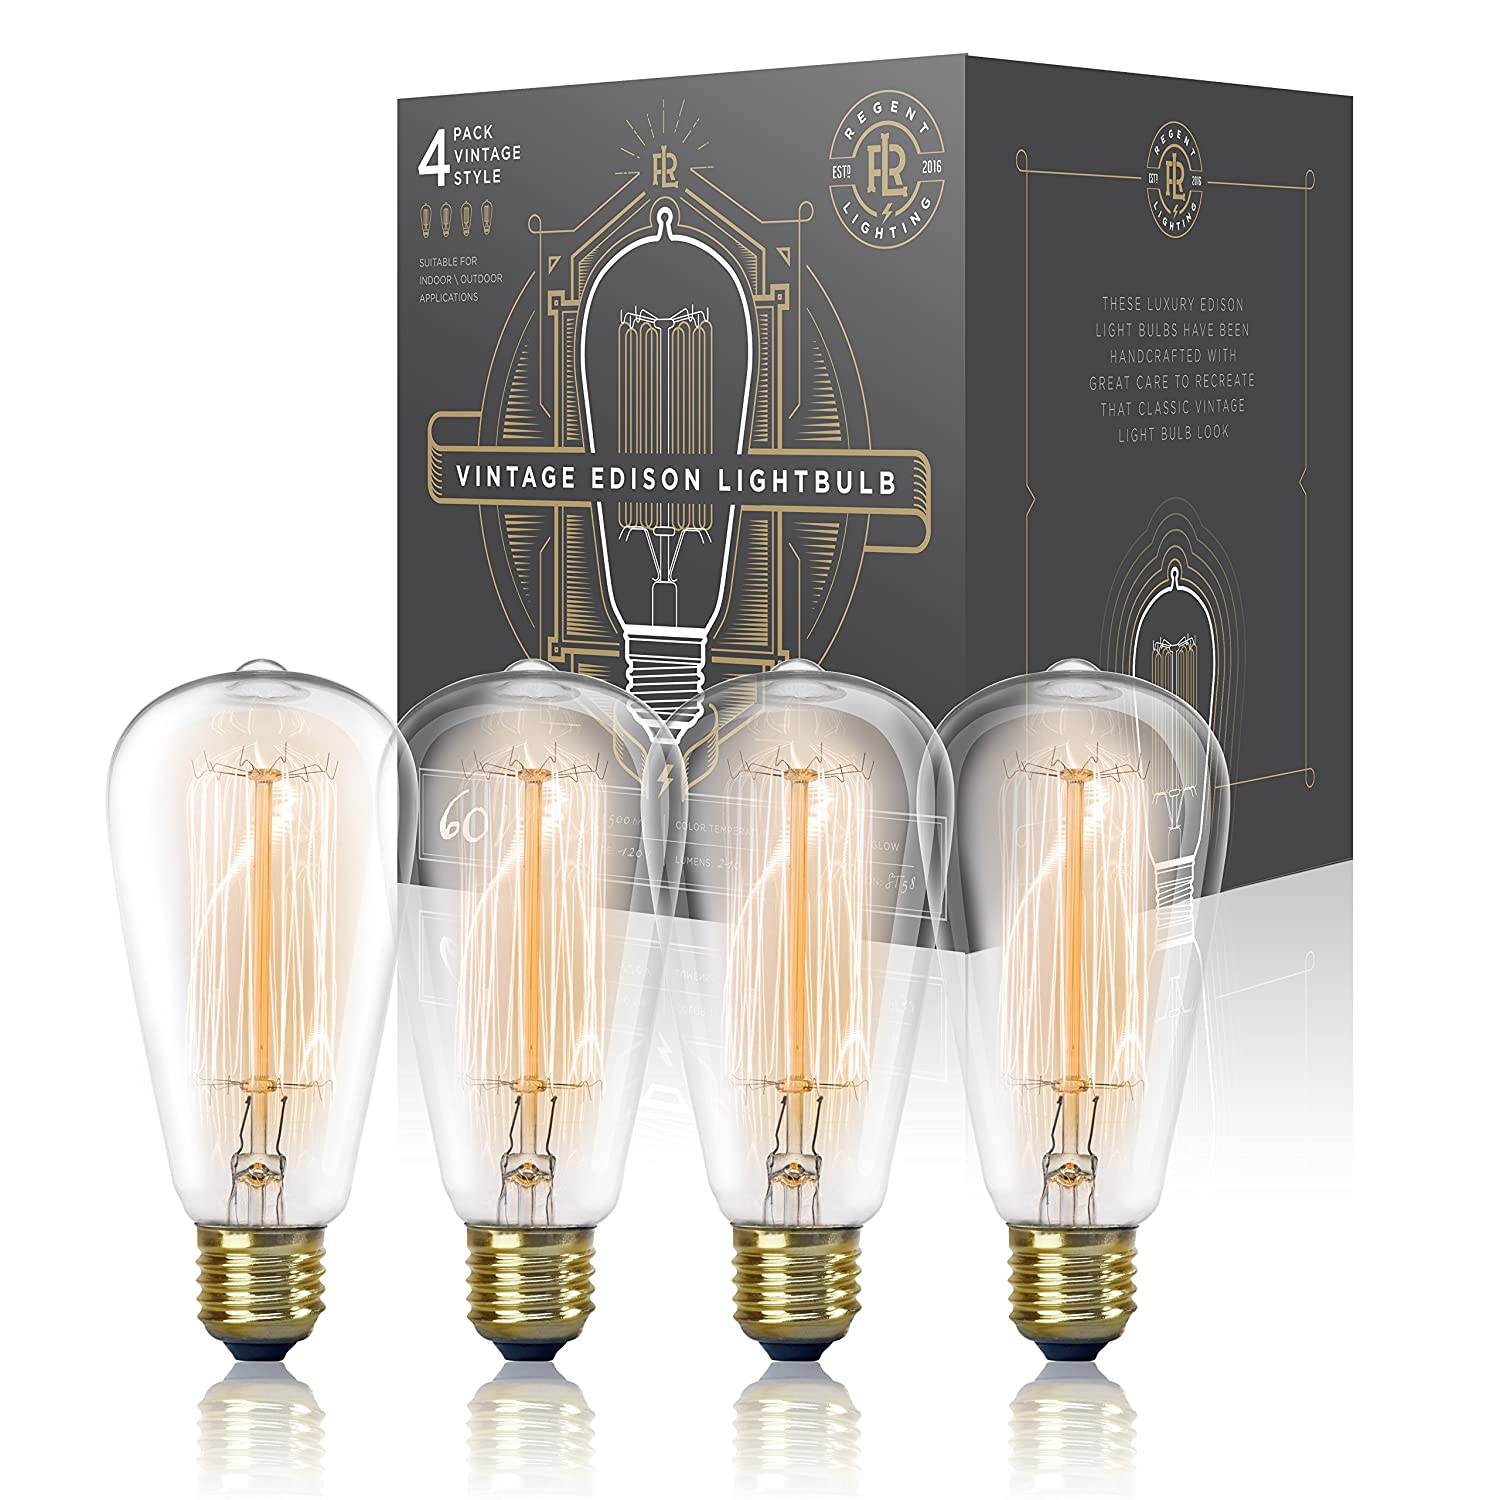 exposed lighting. vintage edison light bulb 60w 4 pack dimmable exposed filament incandescent clear st58 teardrop squirrel cage style e26 medium base 2700k 210 lighting